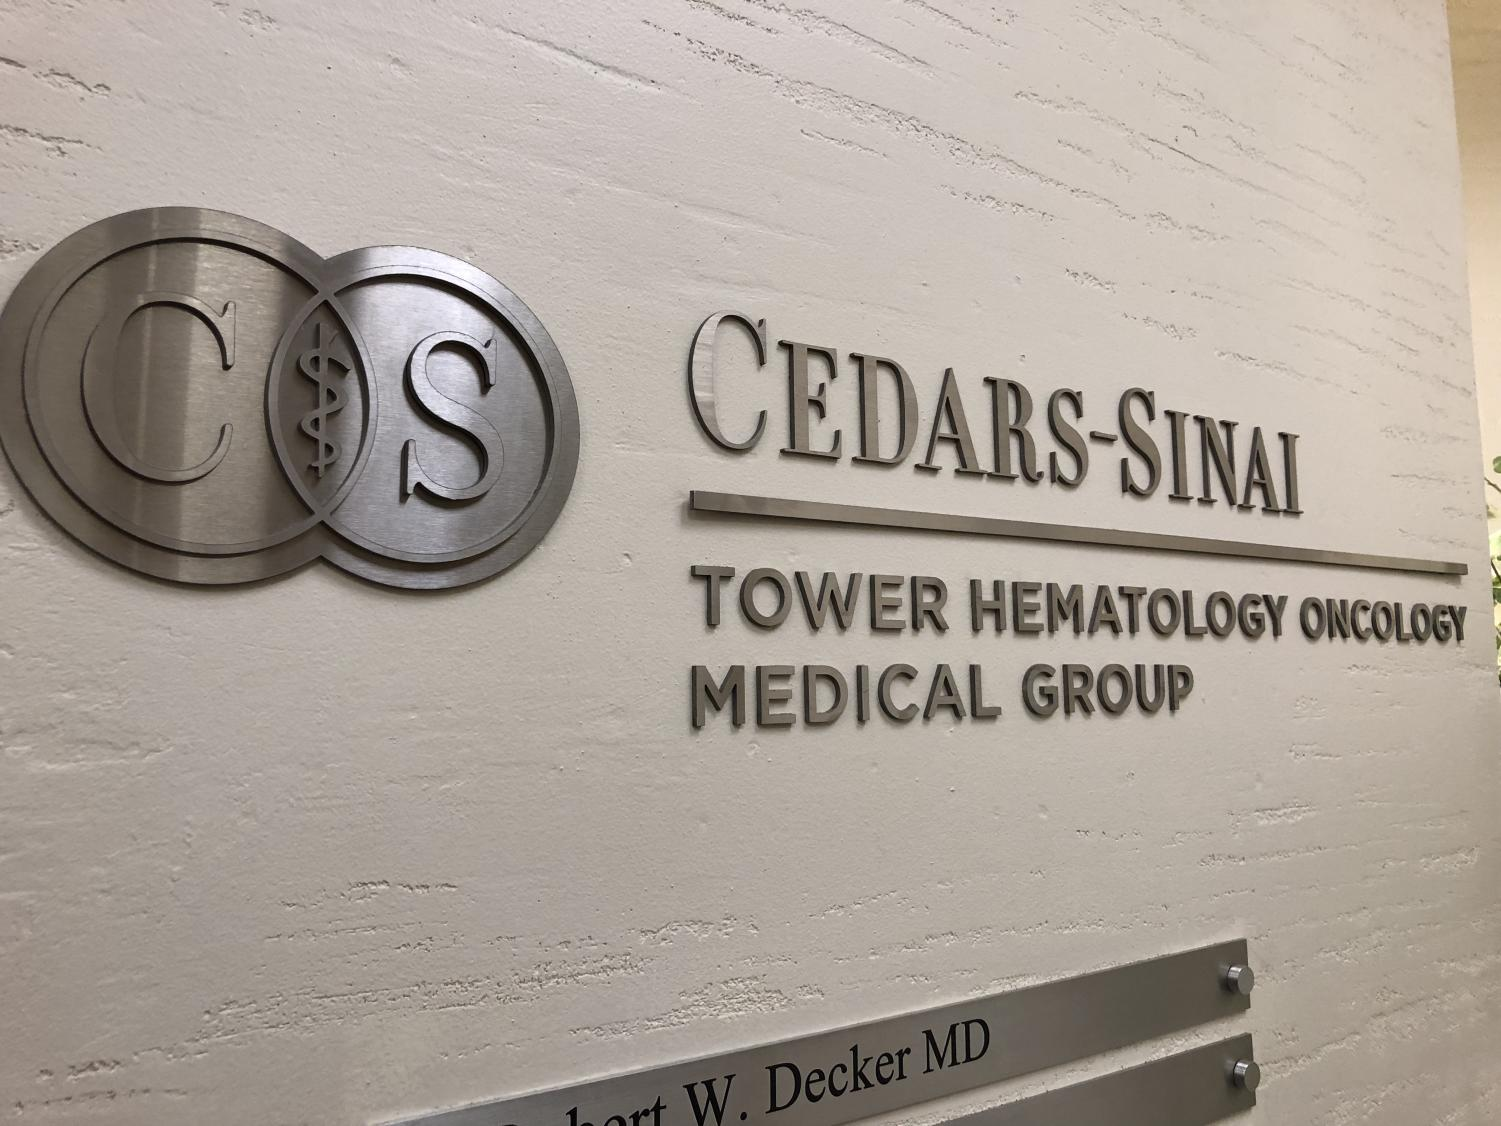 Because my mom had felt so weak after her past chemo treatments due to dehydration, I made sure we got her to Cedar-Sinai Tower Hematology Oncology Medical Group everyday to get an IV infusion of liquids.